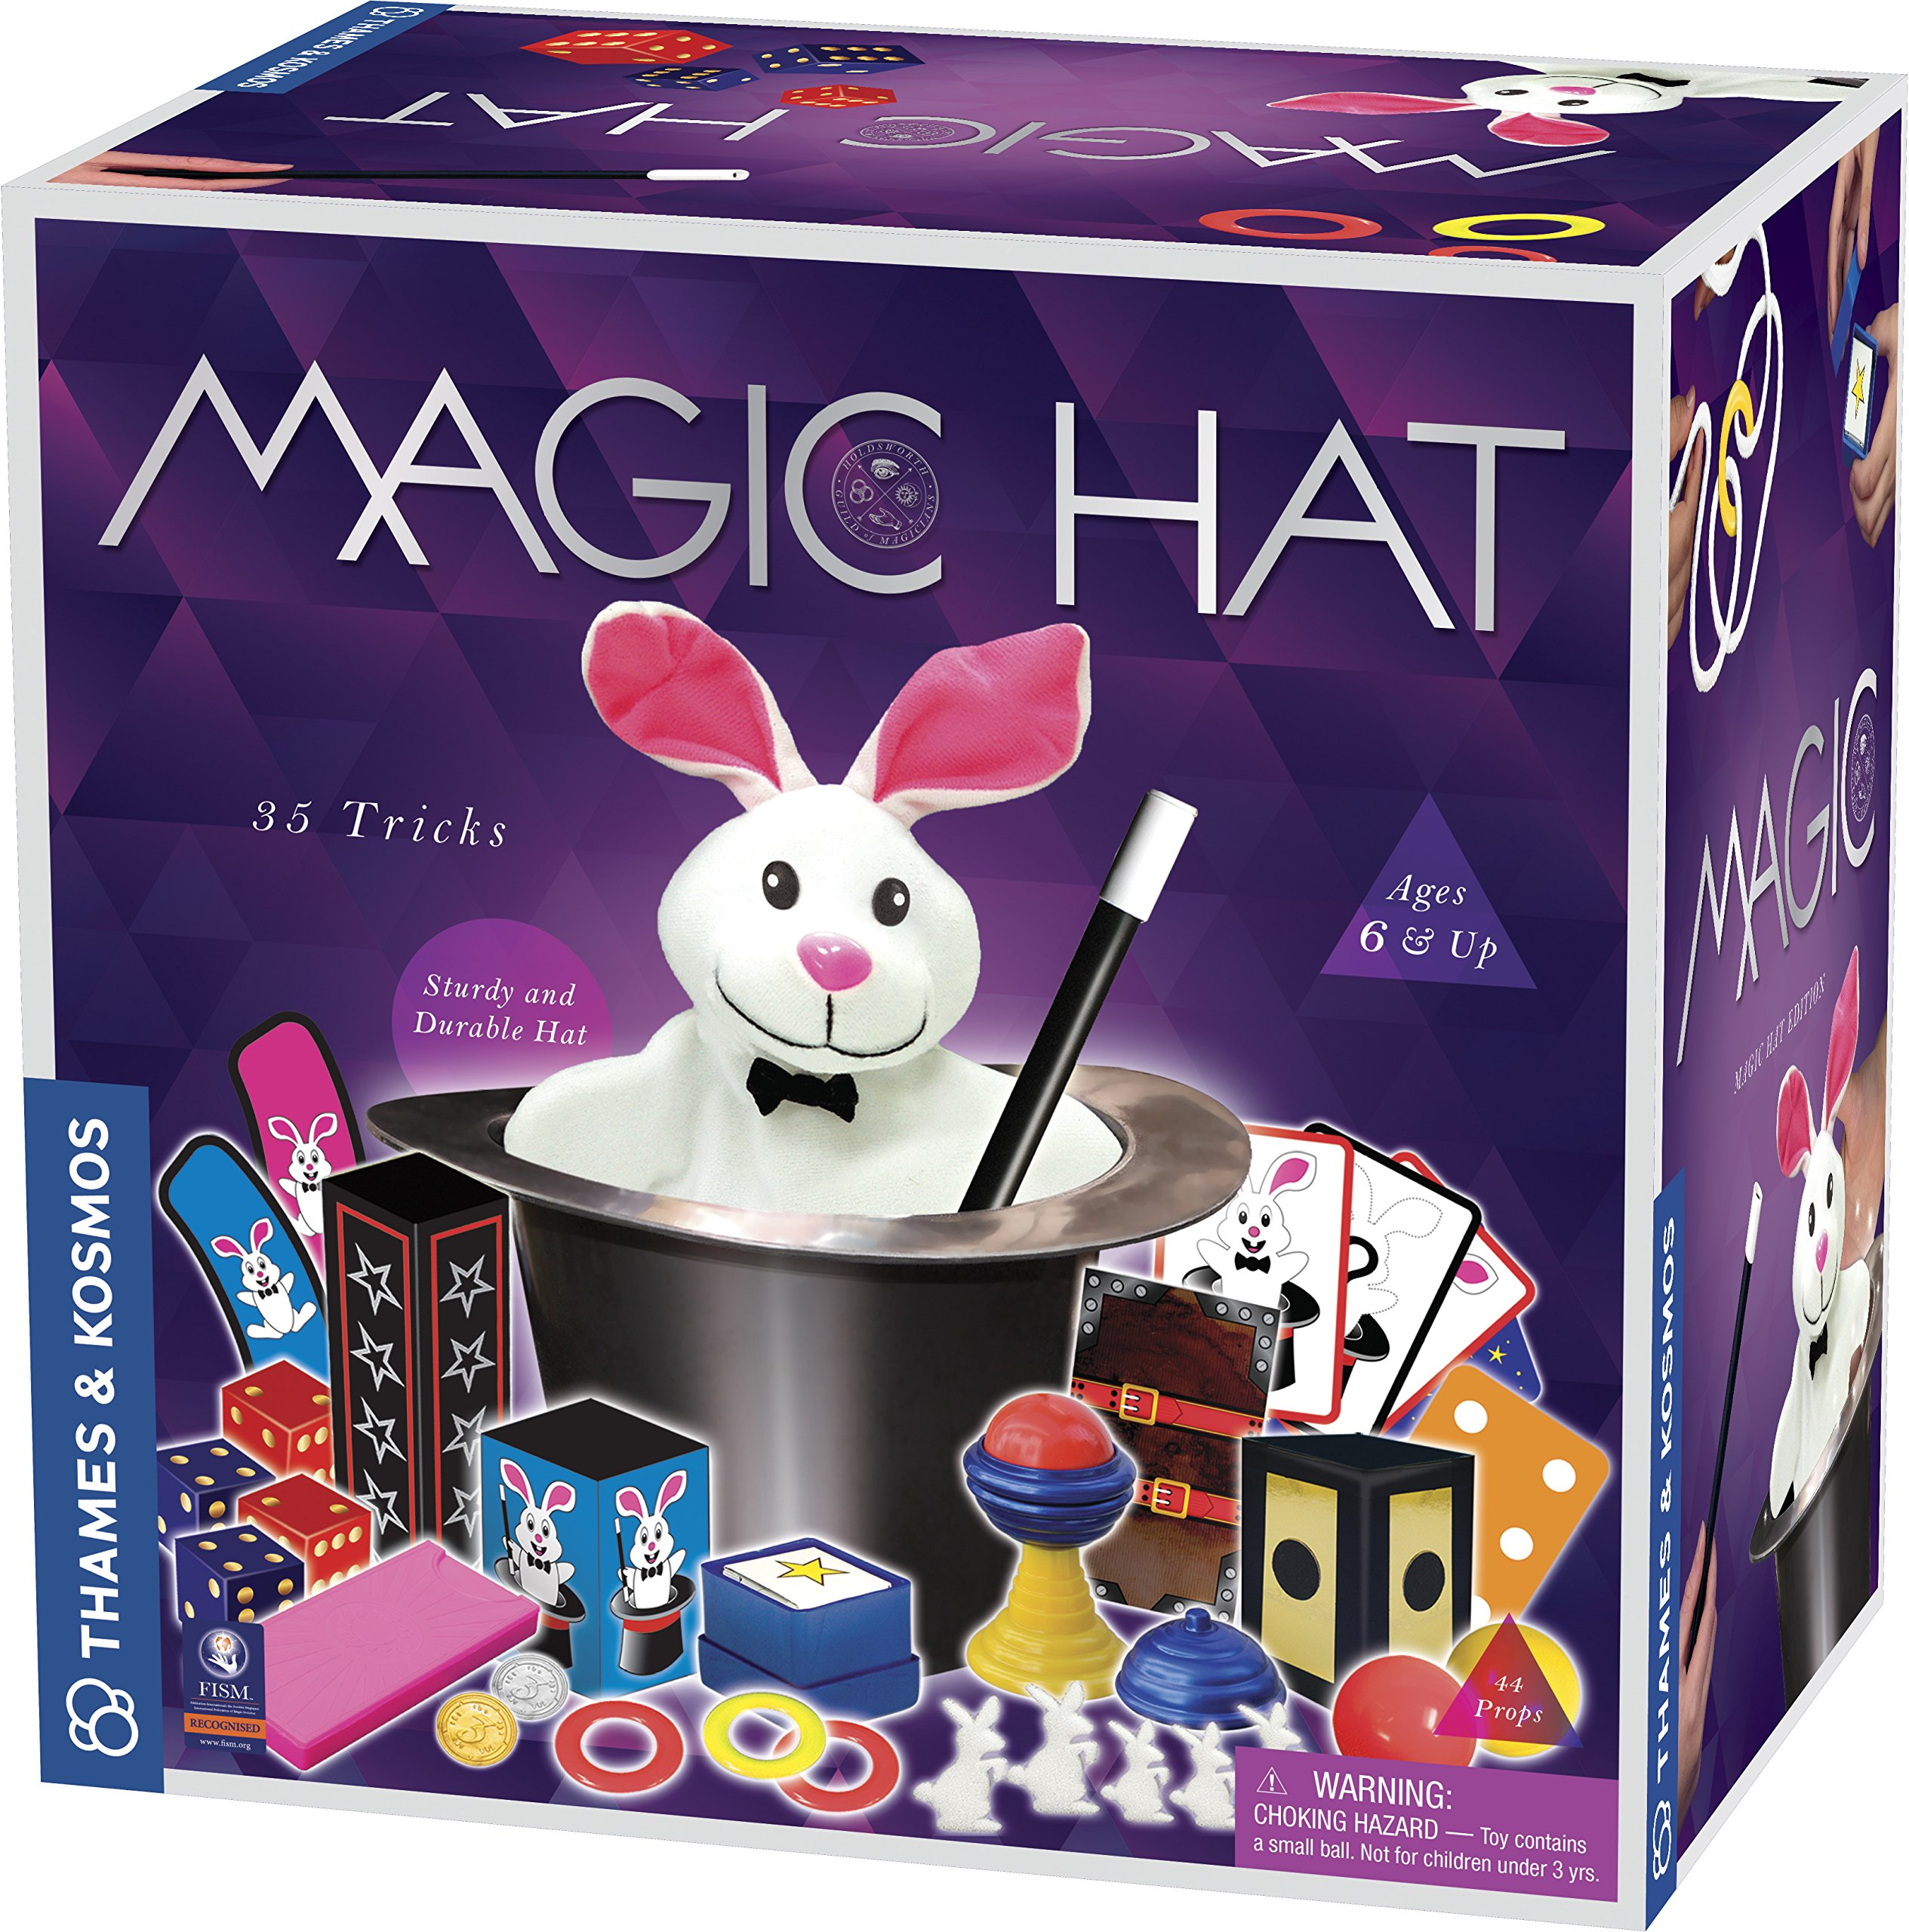 Thames & Kosmos Magic Hat with 35 Tricks | 24-Page Illustrated Instruction in Full Color | for Magicians Ages 6+ by Thames & Kosmos